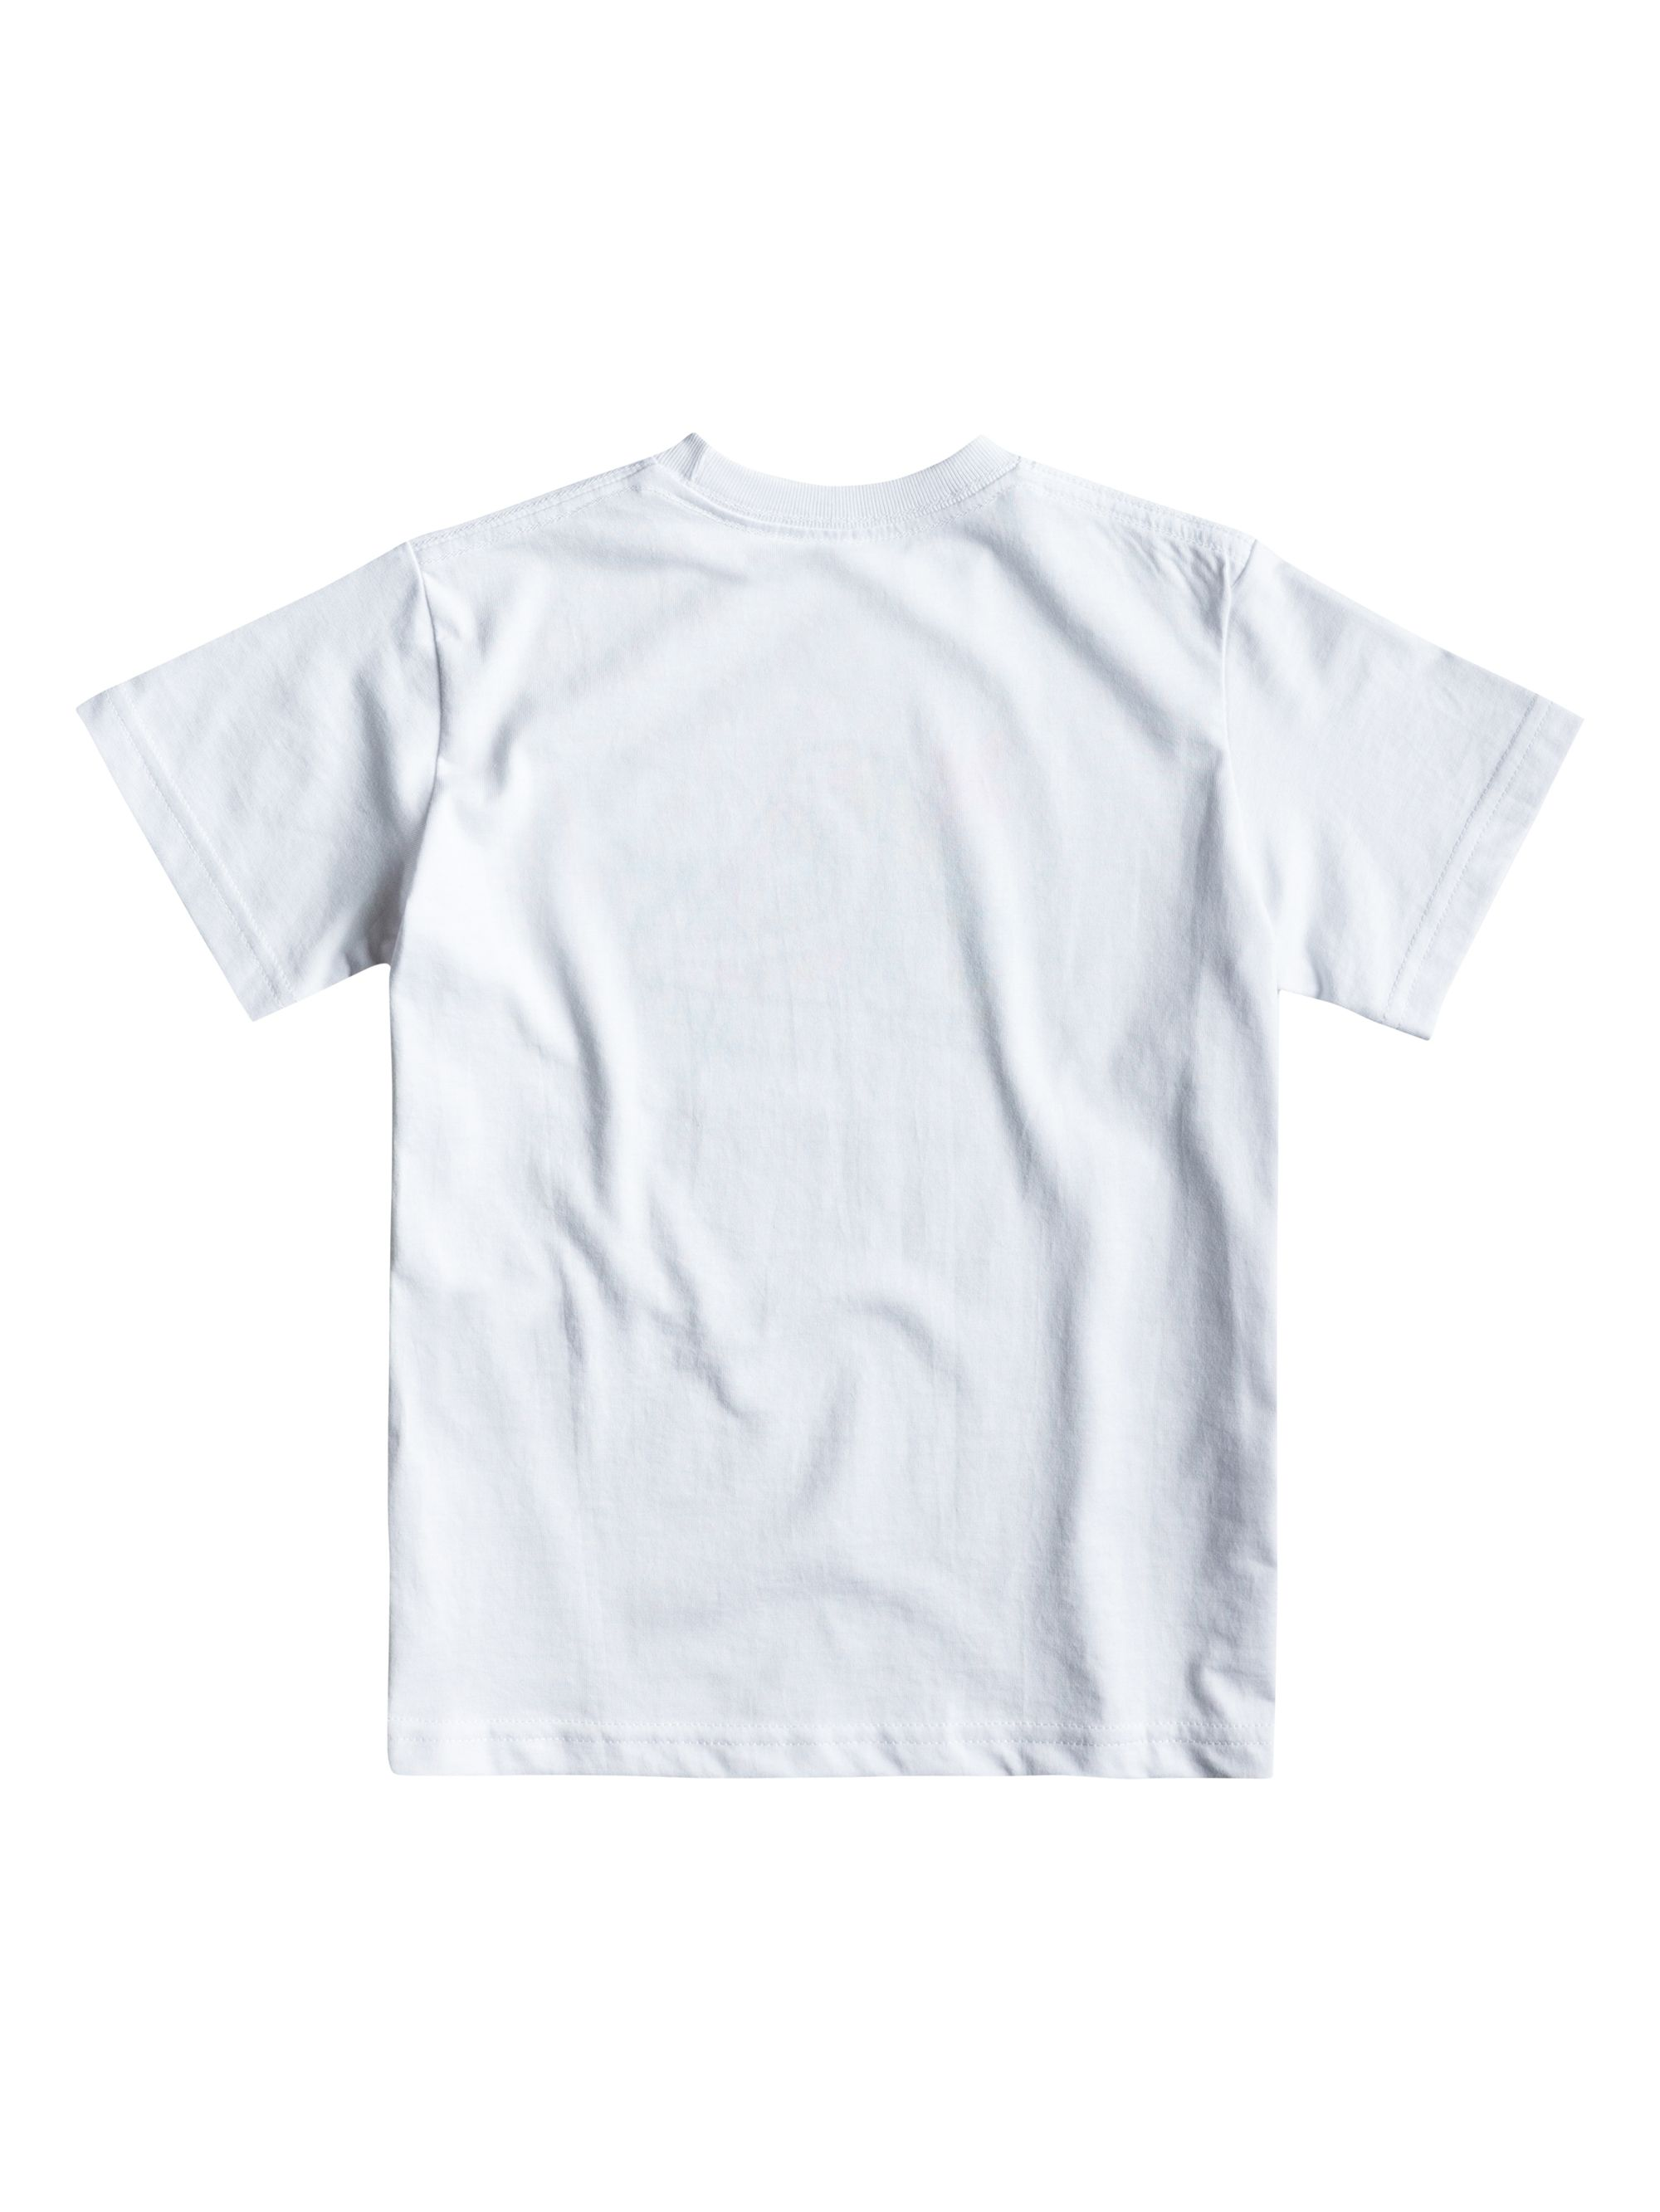 Boys  basic  r22 t-shirt